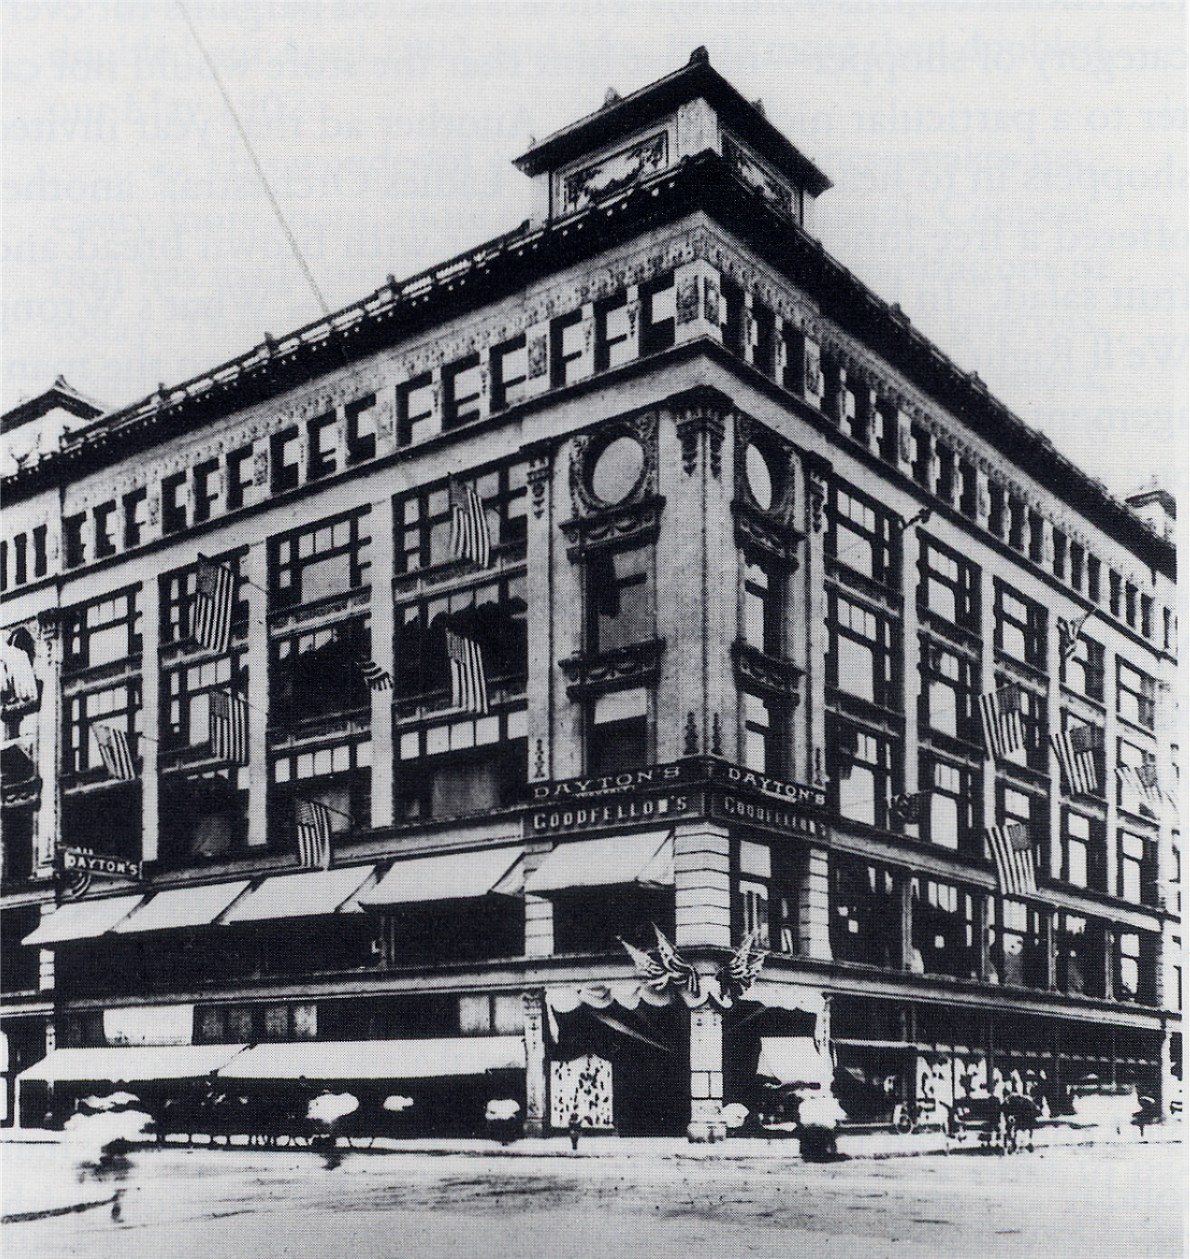 MN90: Dayton's Department Store